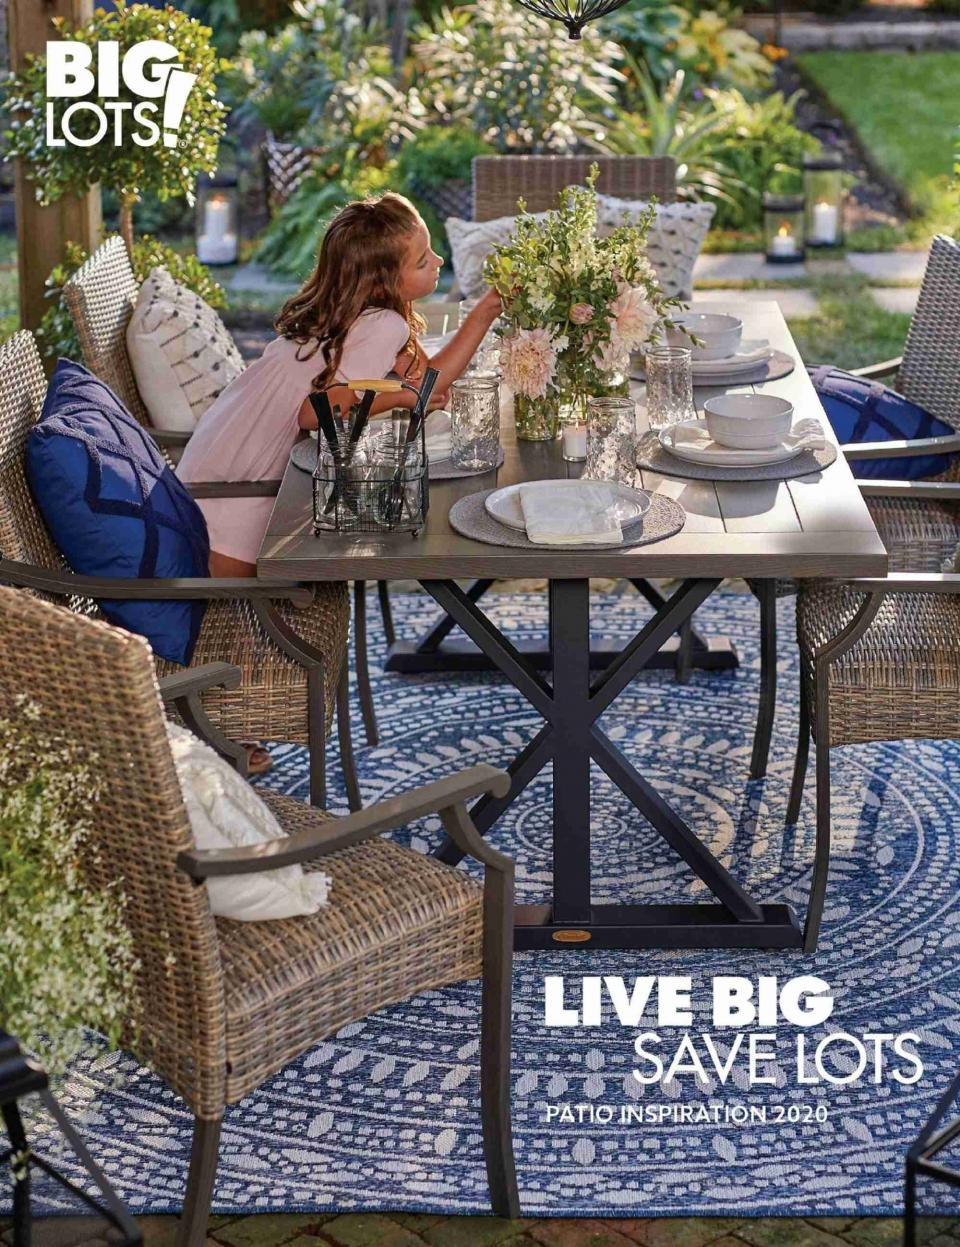 Big Lots June Patio Collection Ad valid in June 2020